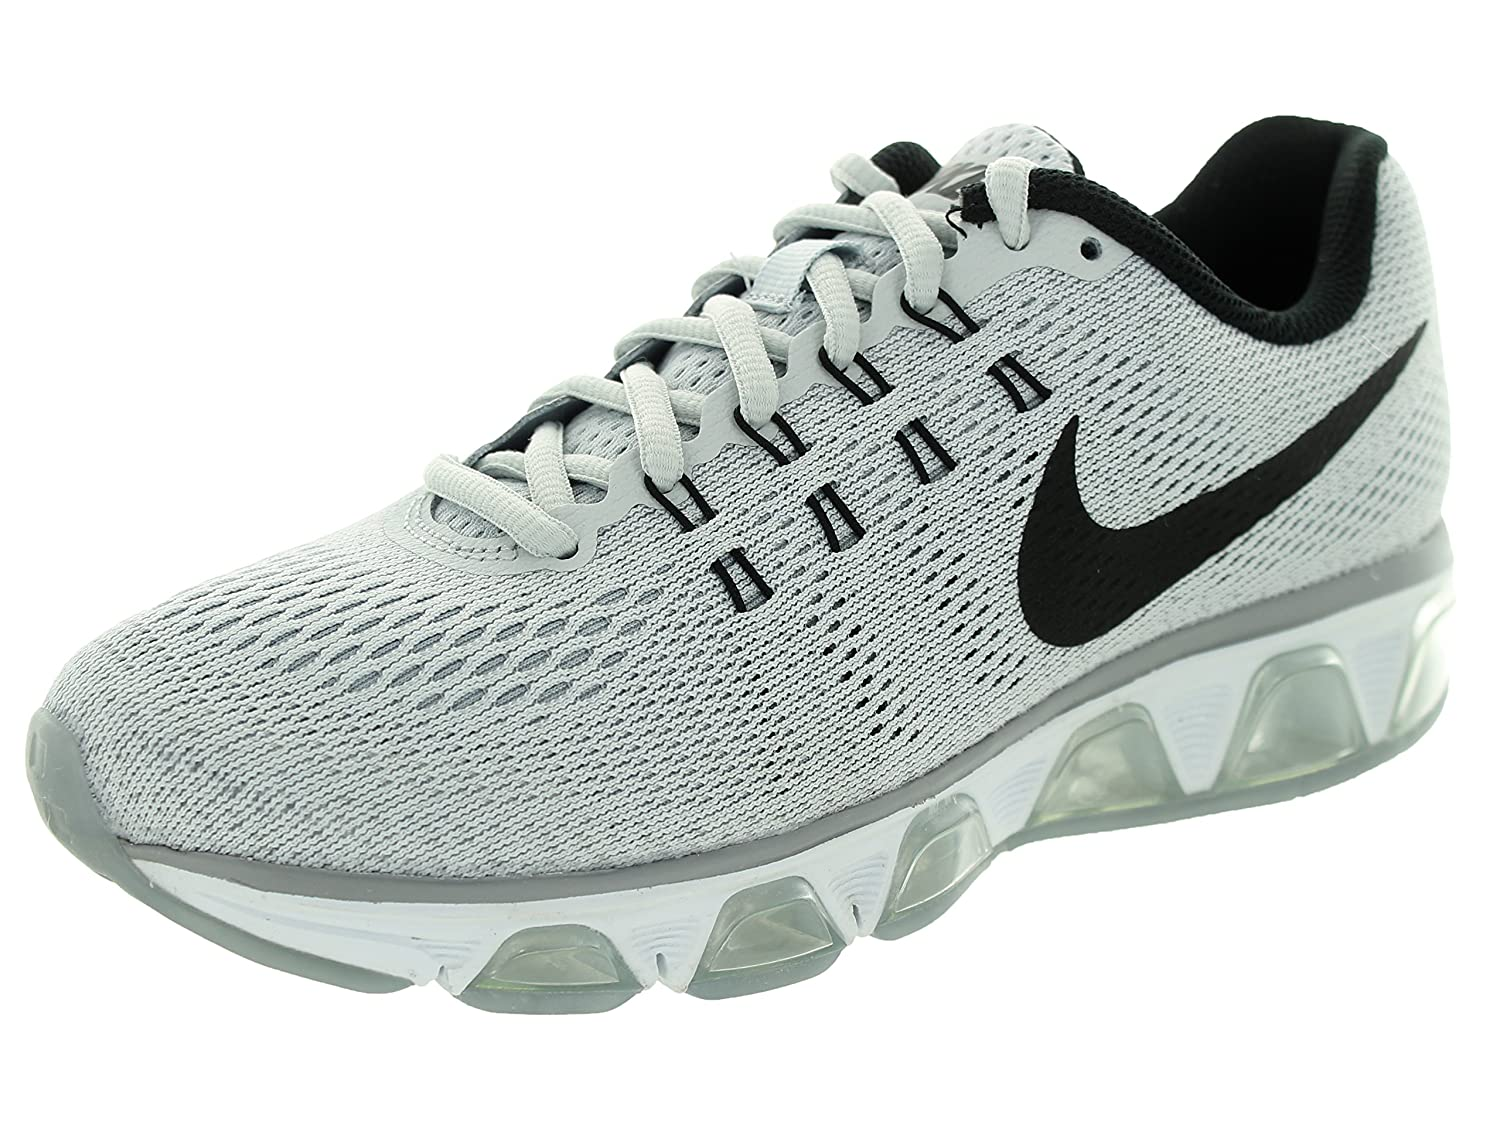 buy popular 19fc5 56f38 Amazon.com  Nike Women s Air Max Tailwind 8 Pure Platinum Blck WLF Gry Wht  Running Shoe 6 Women US  Shoes